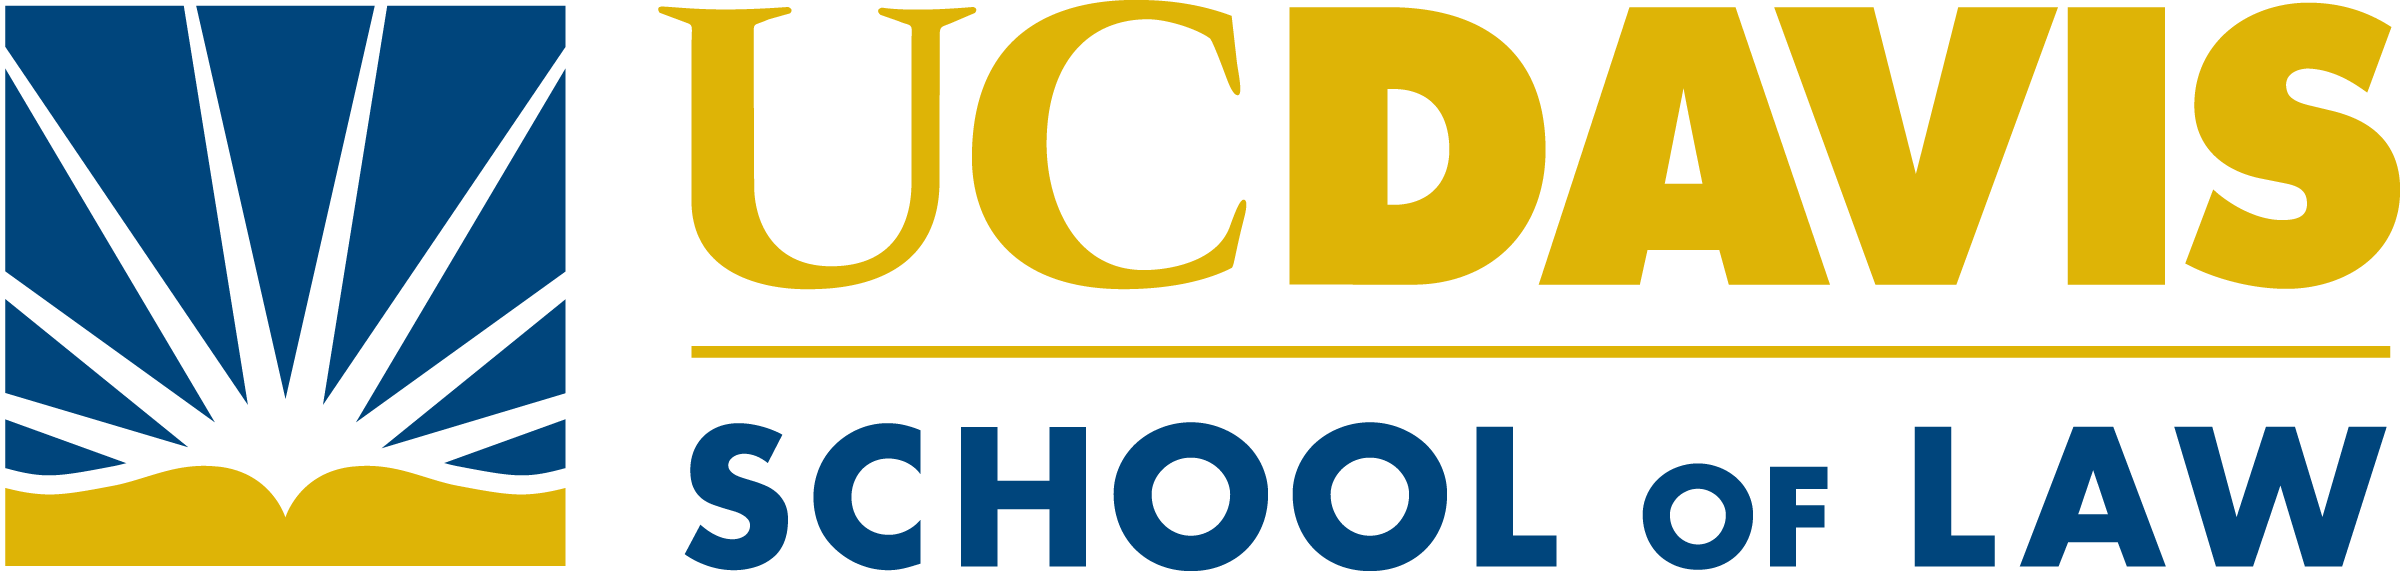 UC Davis School of Law logo